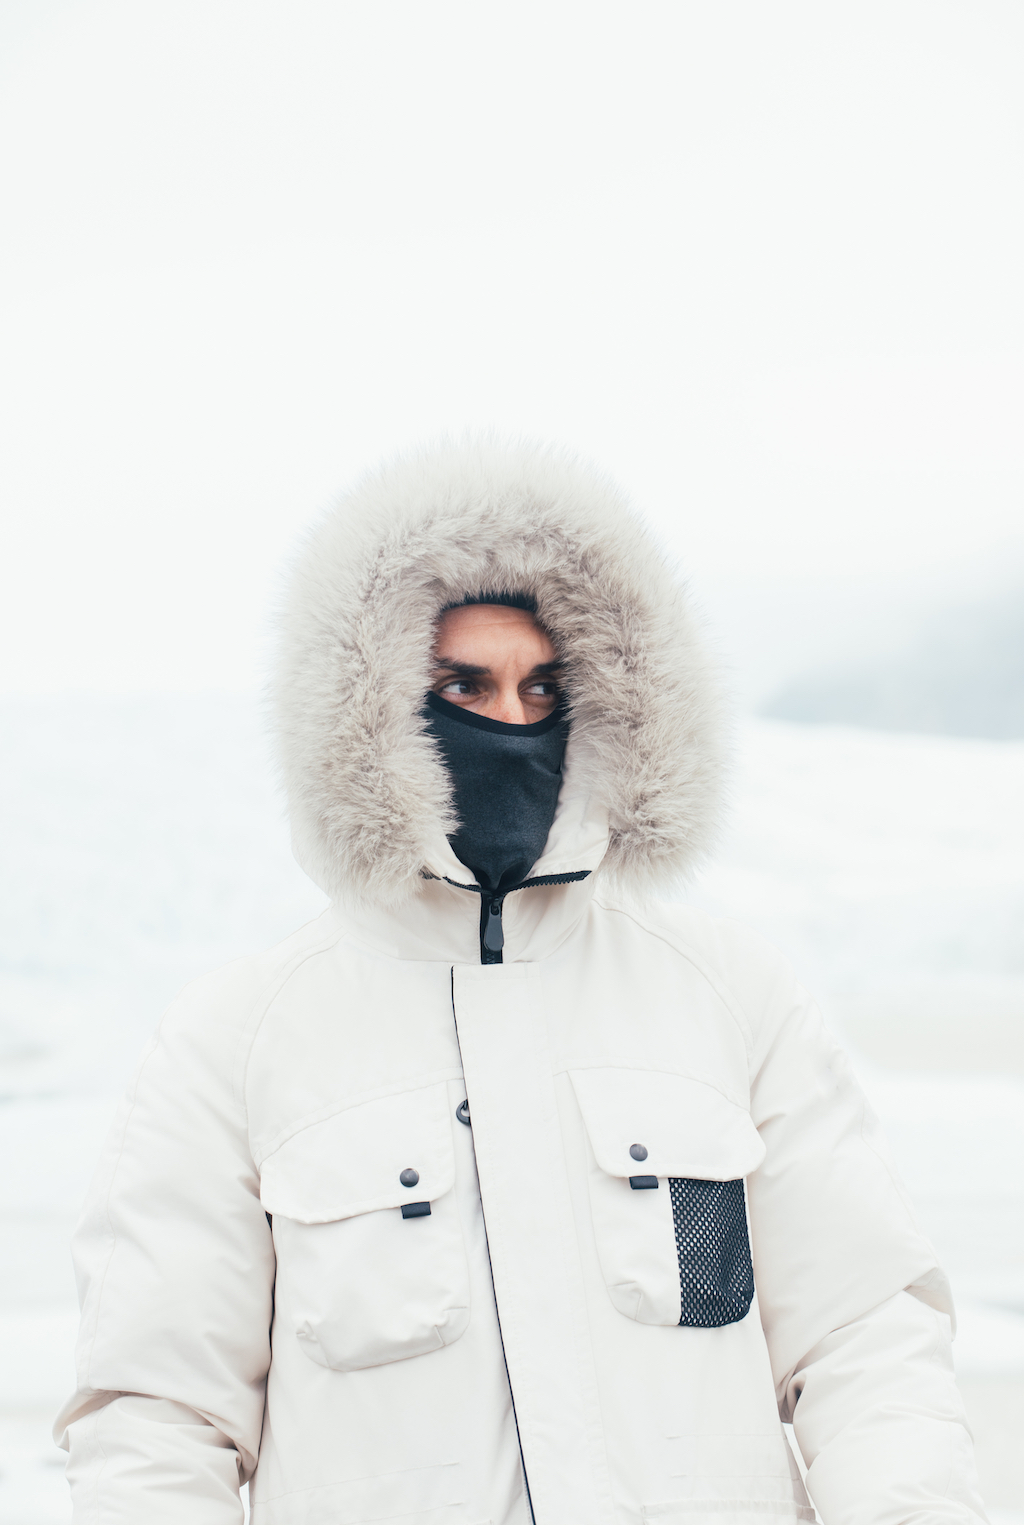 Travel Images - Man Cold in Iceland